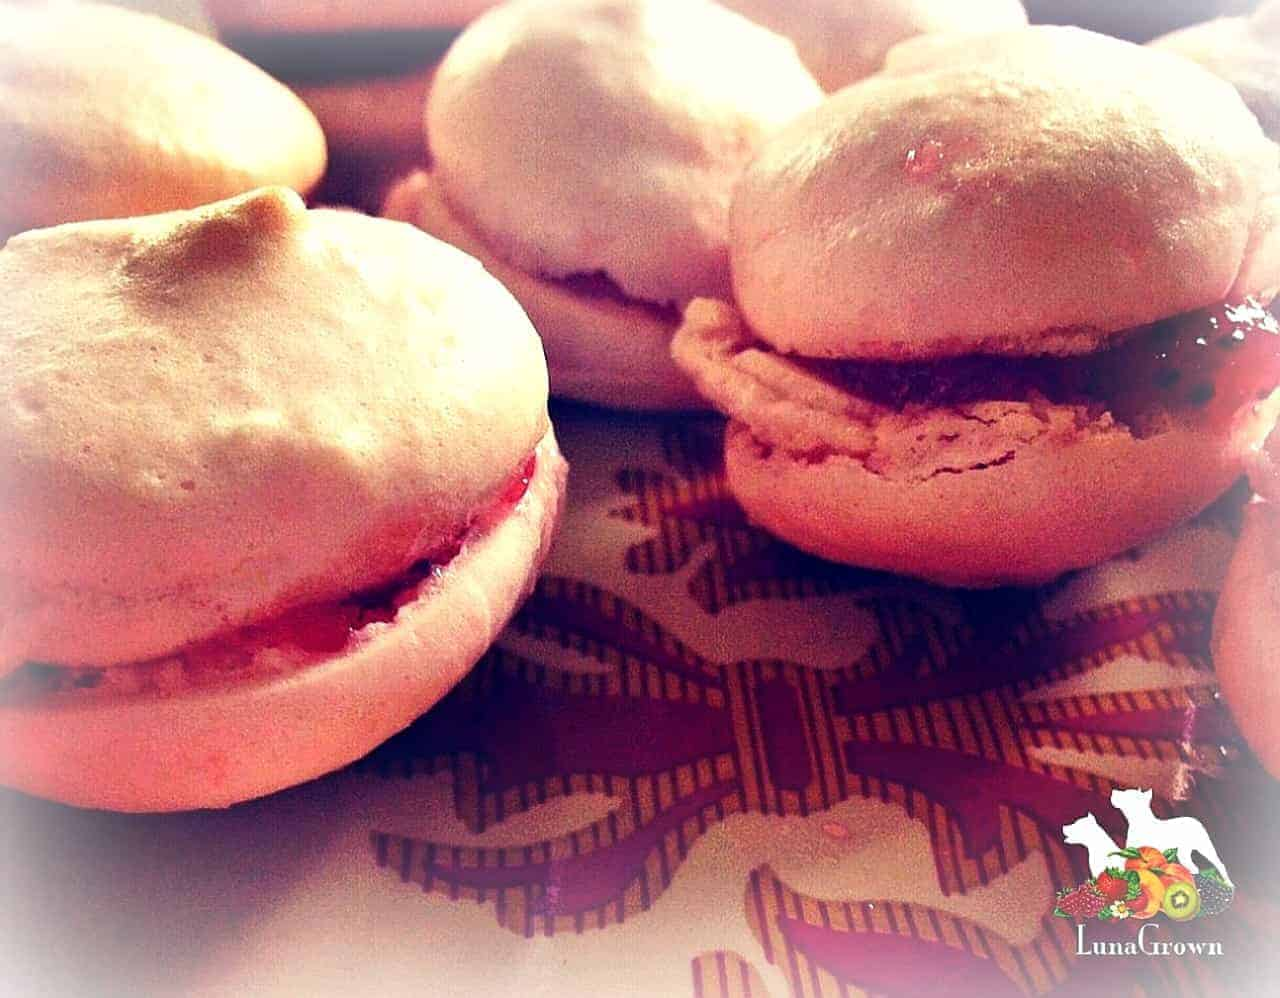 Macaroons with LunaGrown Jam from Cambridge Massachusetts